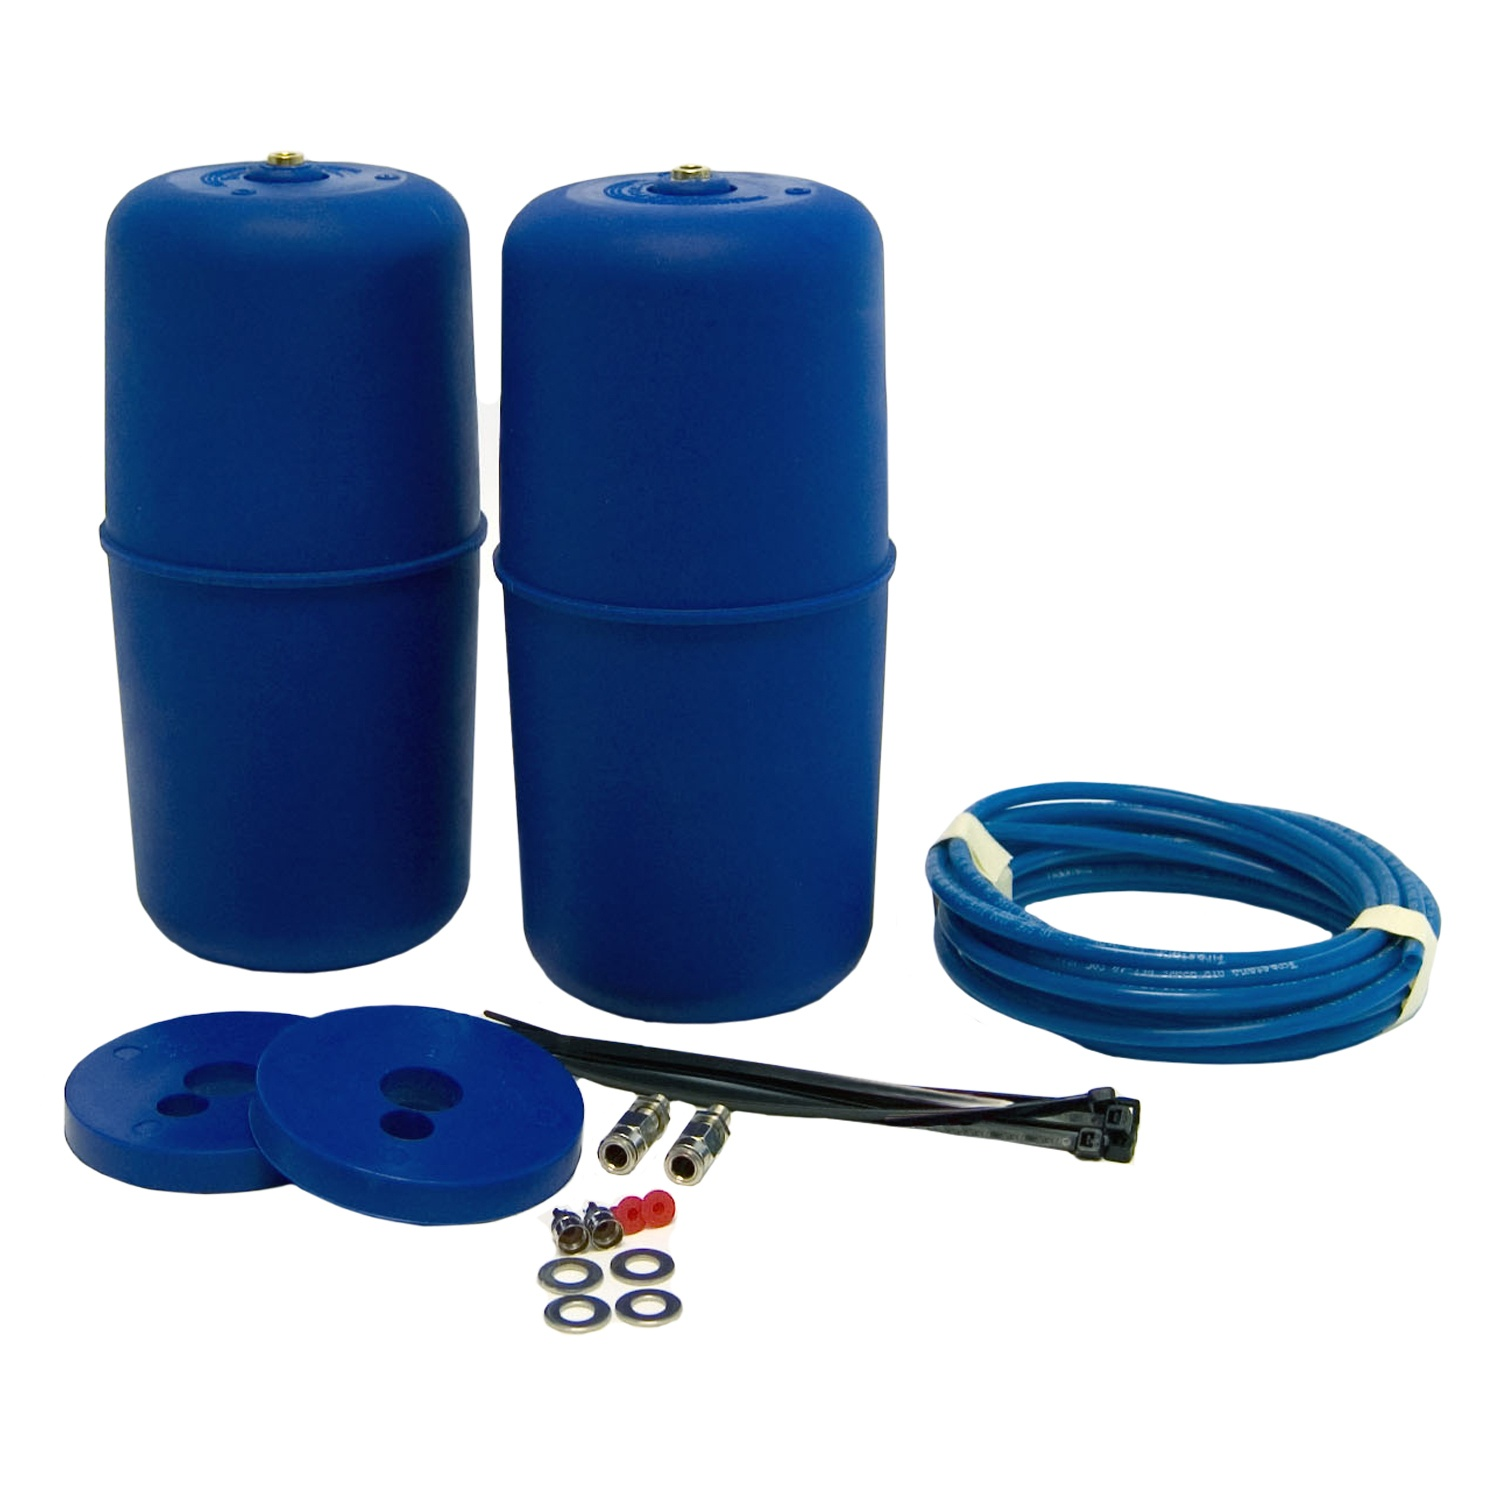 Firestone Ride-Rite 4114 Coil-Riter Air Helper Spring Kit